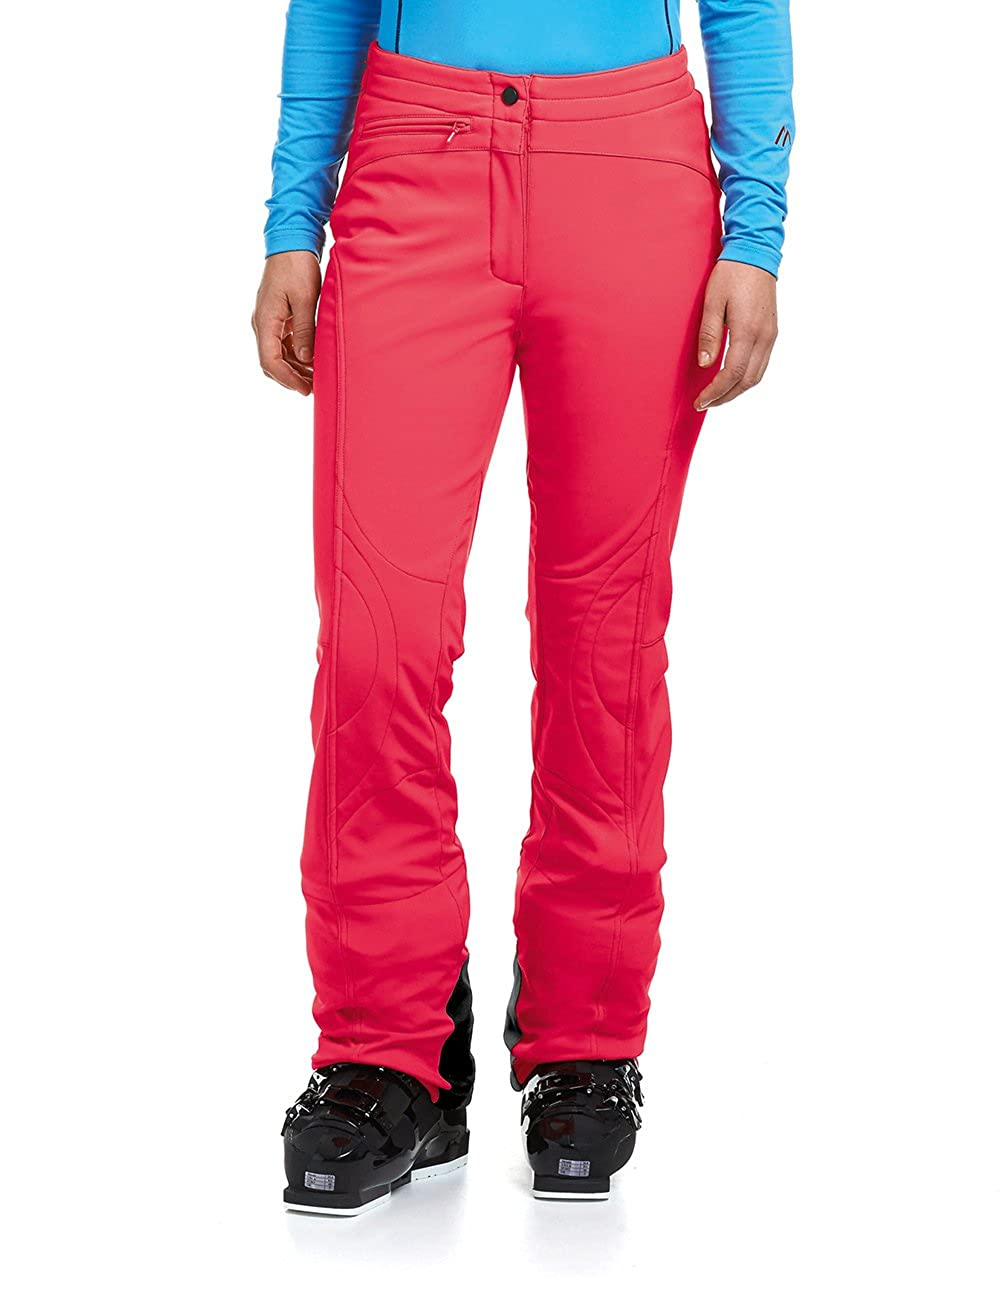 Donna maier sports Marie Pantaloni in Softshell